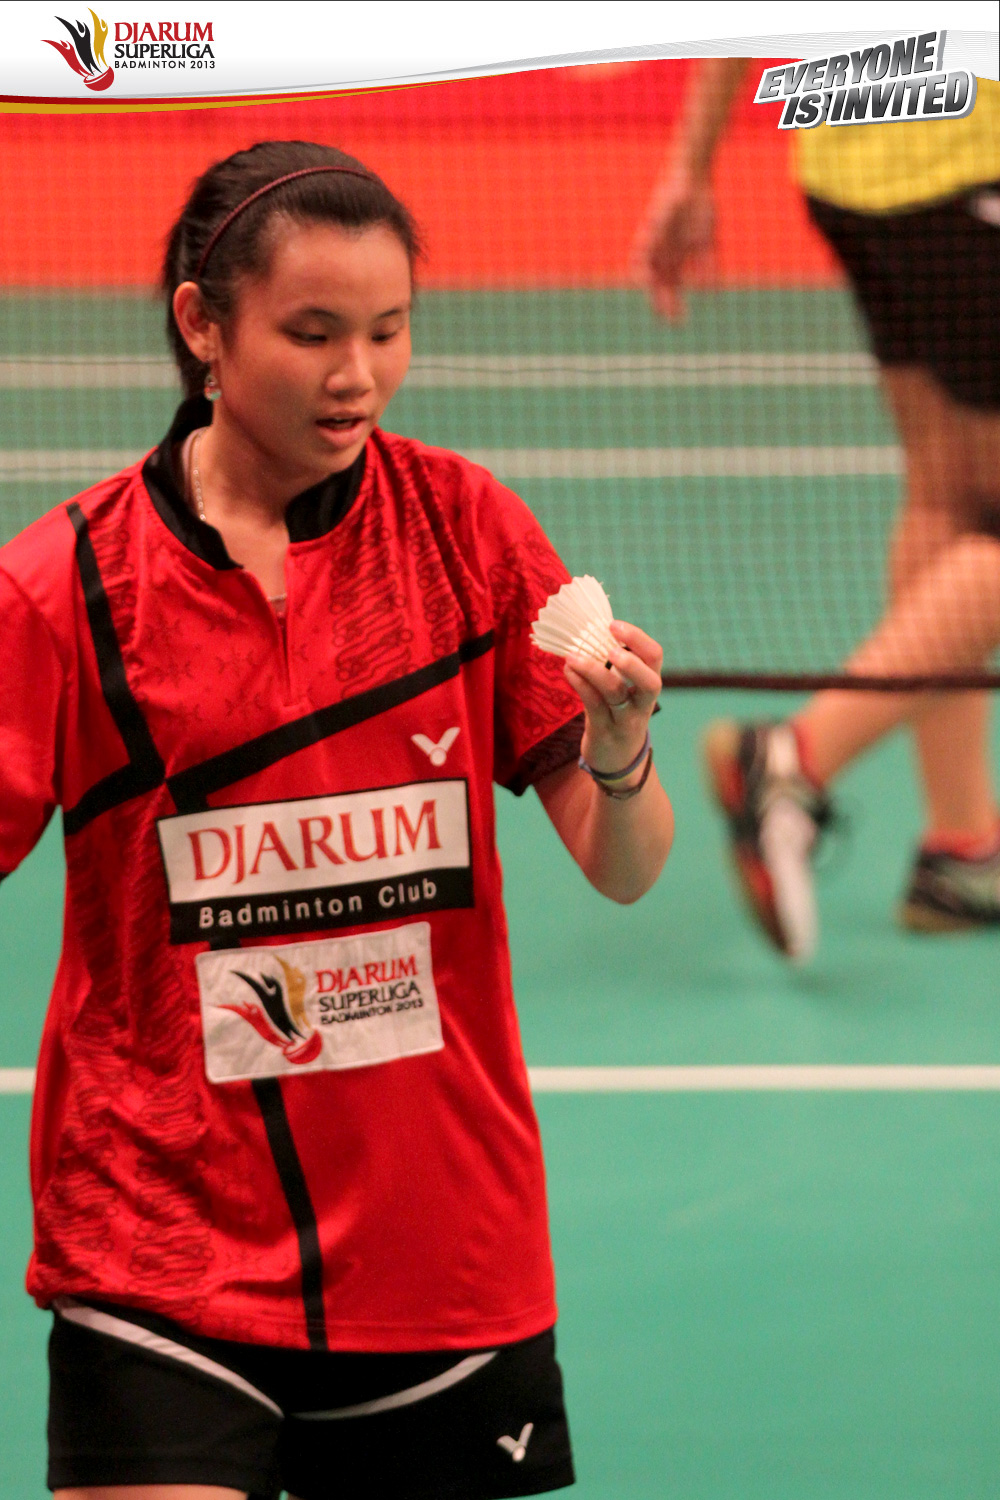 Djarum Badminton Djarum Superliga Badminton 2013 Hari ke 4